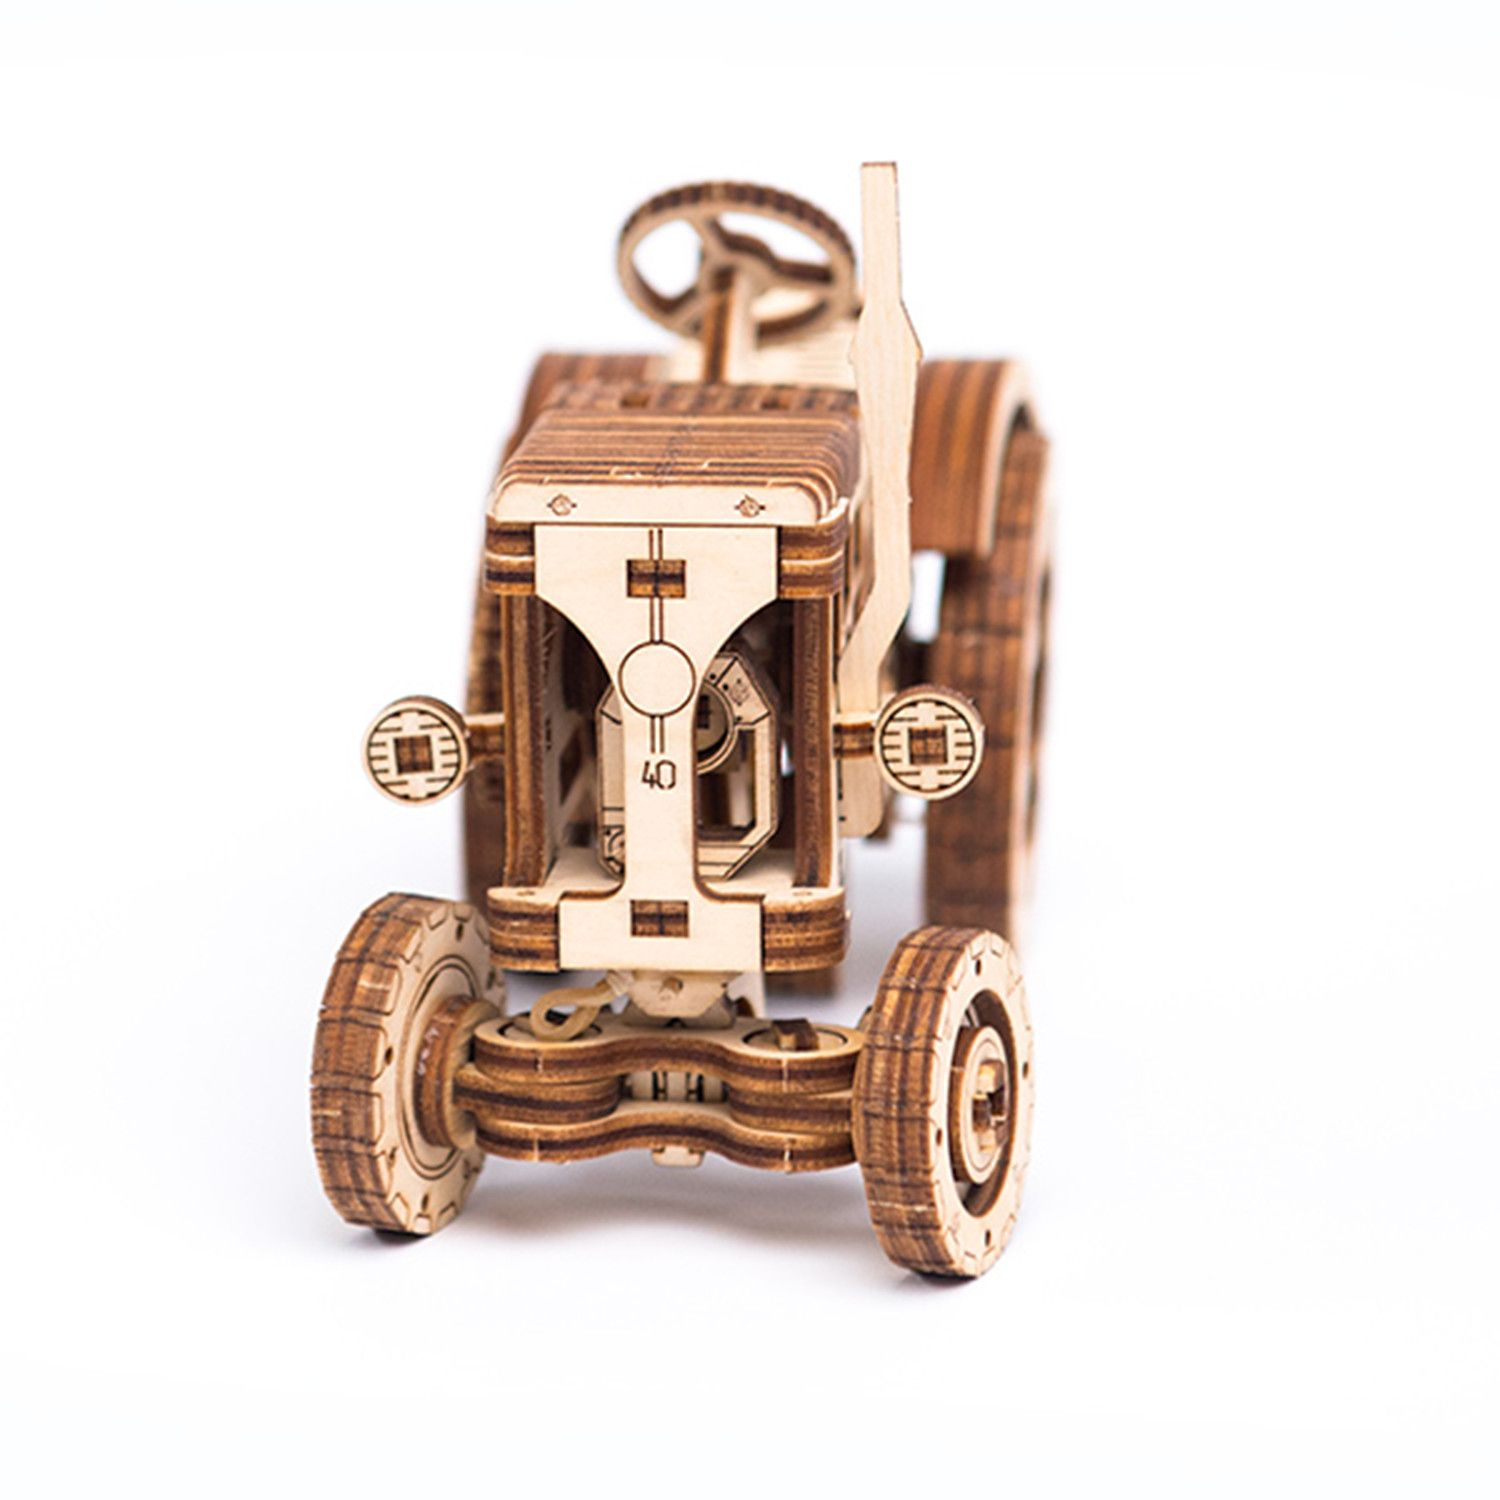 Traktor Willed Characters Compared Strong Wooden Toy Car Cool Stuff Men Fashion Site